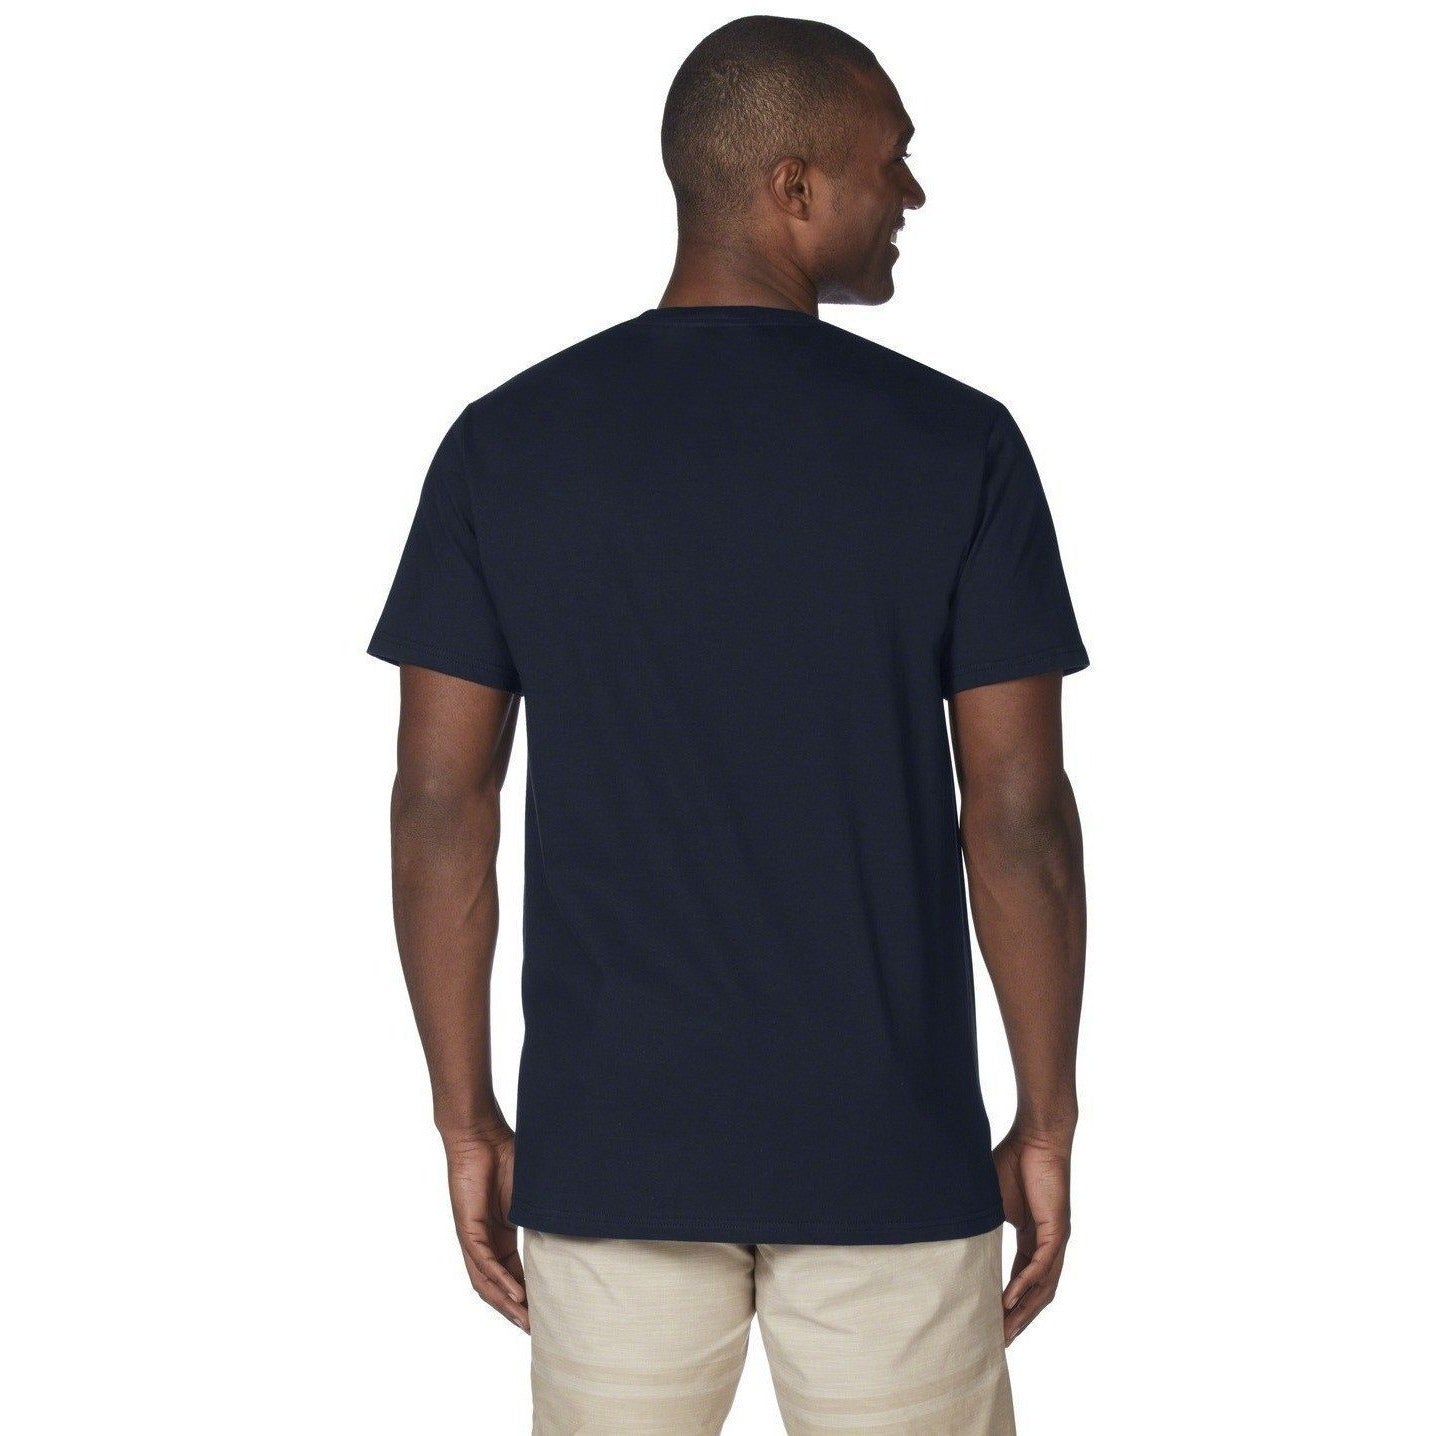 Oakley Pinnacle Tee Shirt Navy Blue - 88 Gear